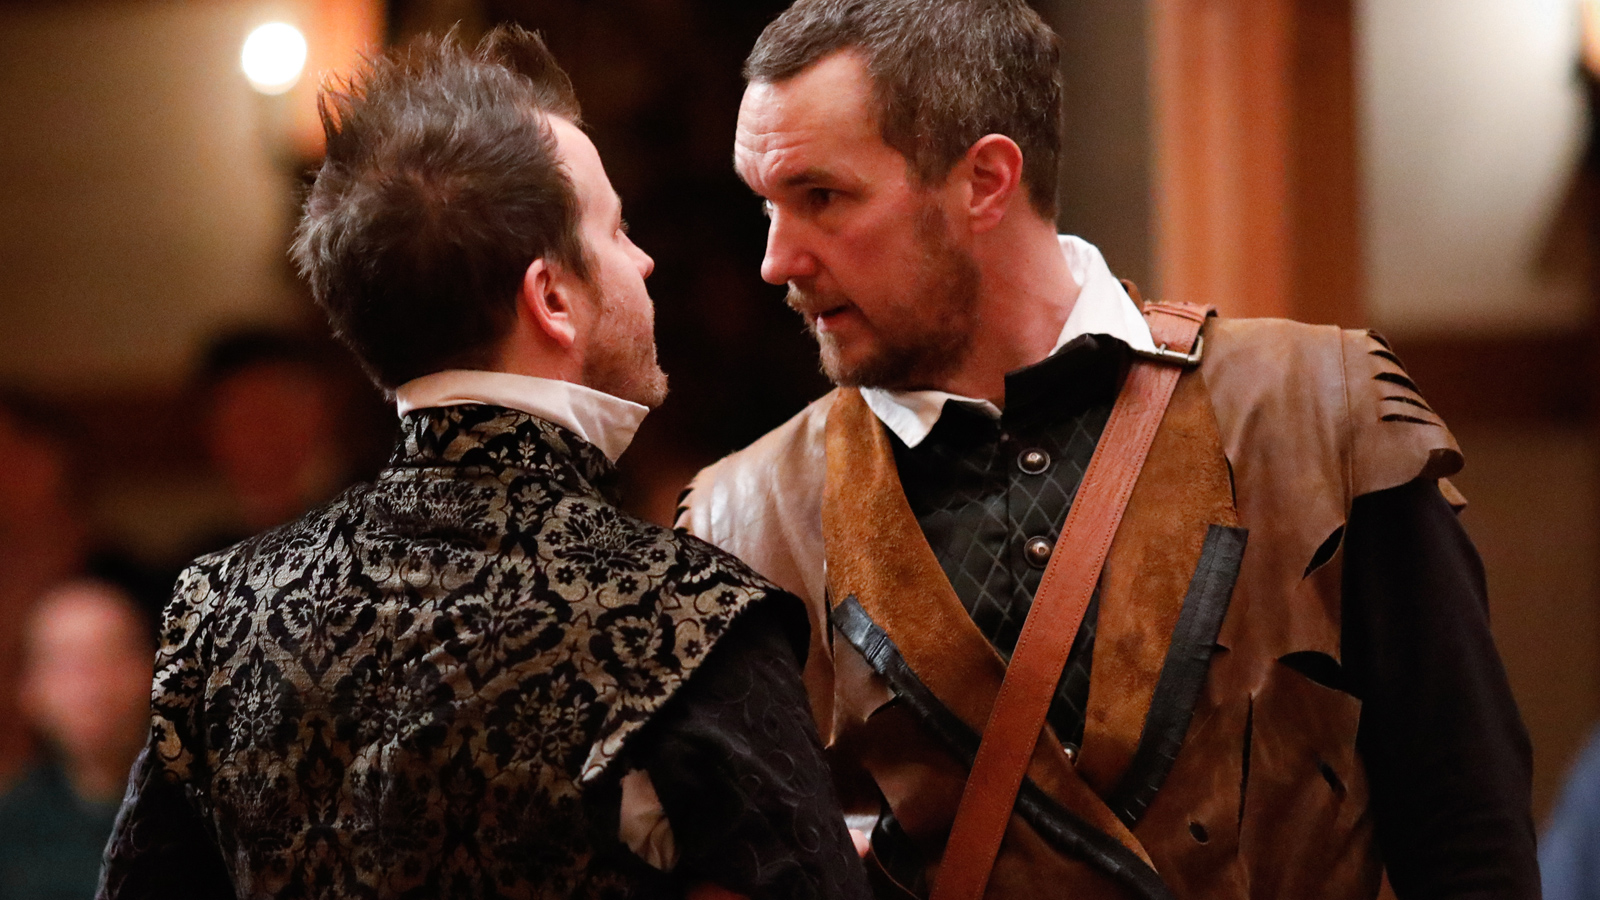 dr ralphs ten things to know rosencrantz and guildenstern are dead